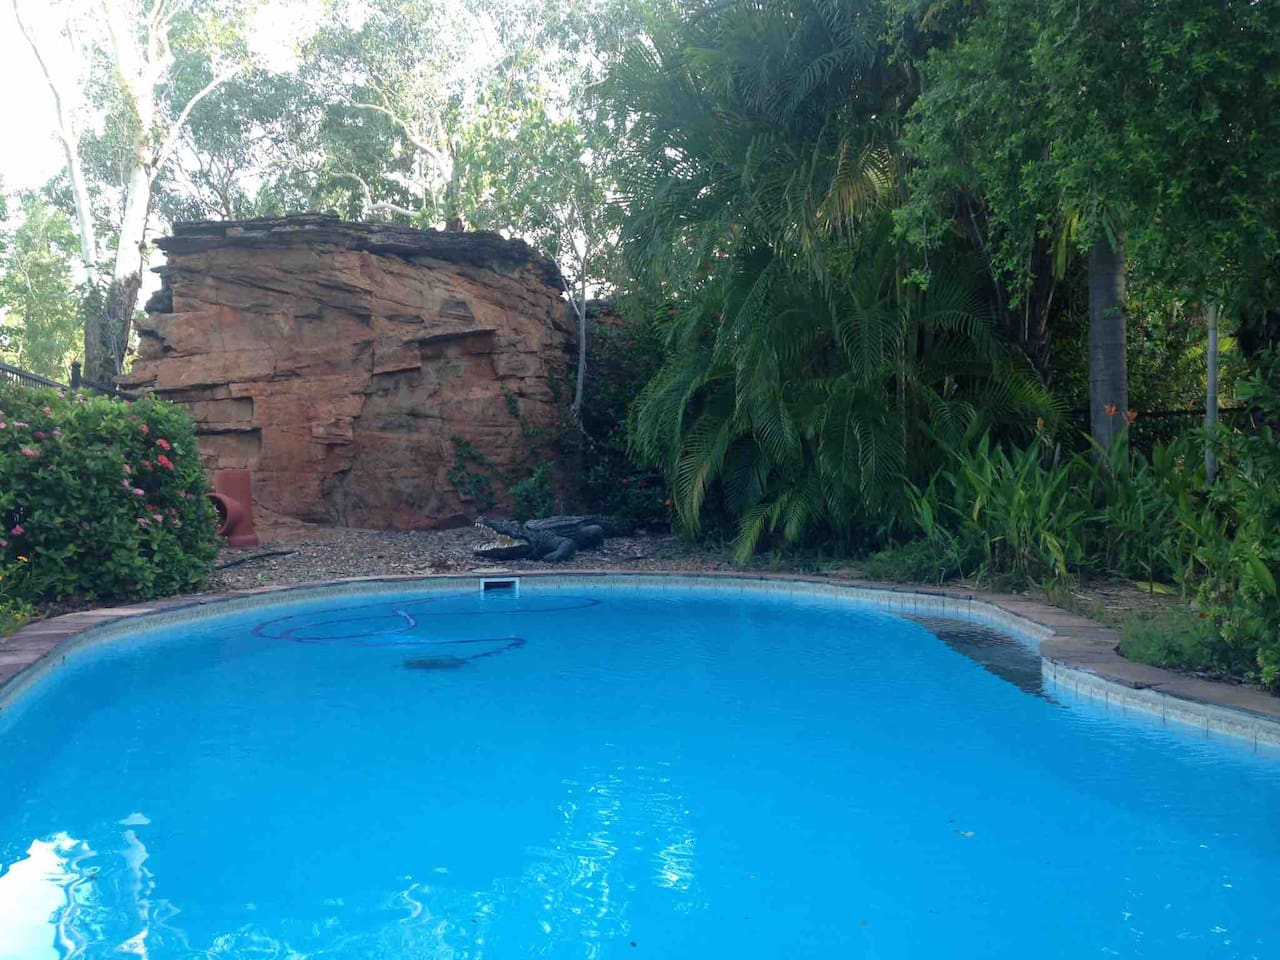 Refreshing pool with a backdrop of Kimberley rock features. Betsy our snappy friend likes sunbathing here.